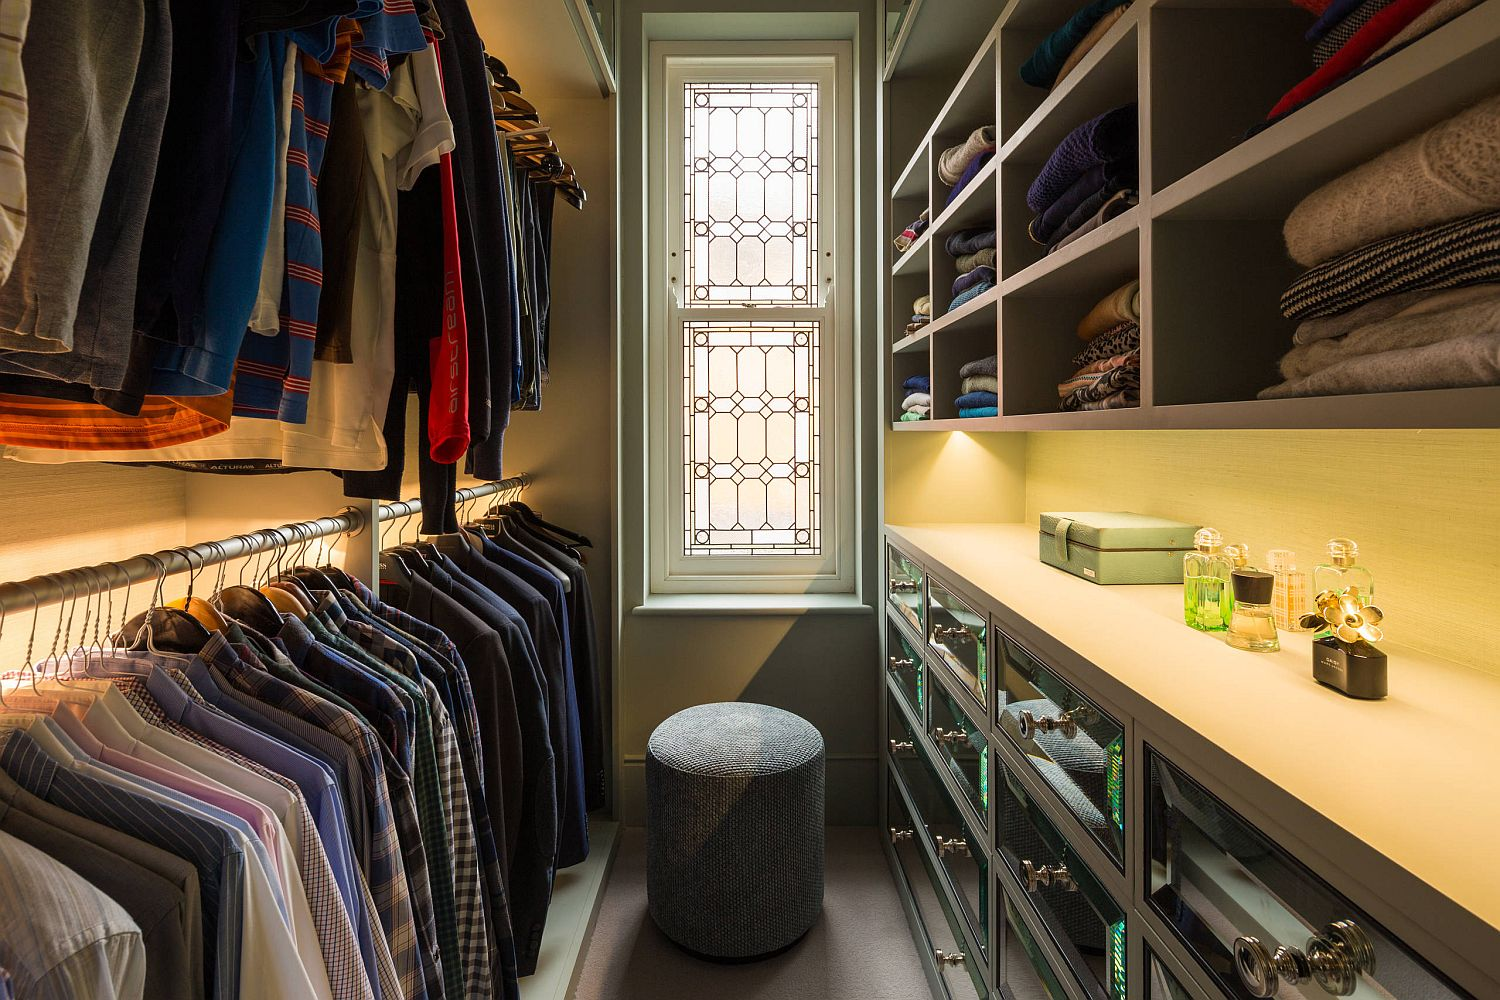 Narrow and small closet organization idea